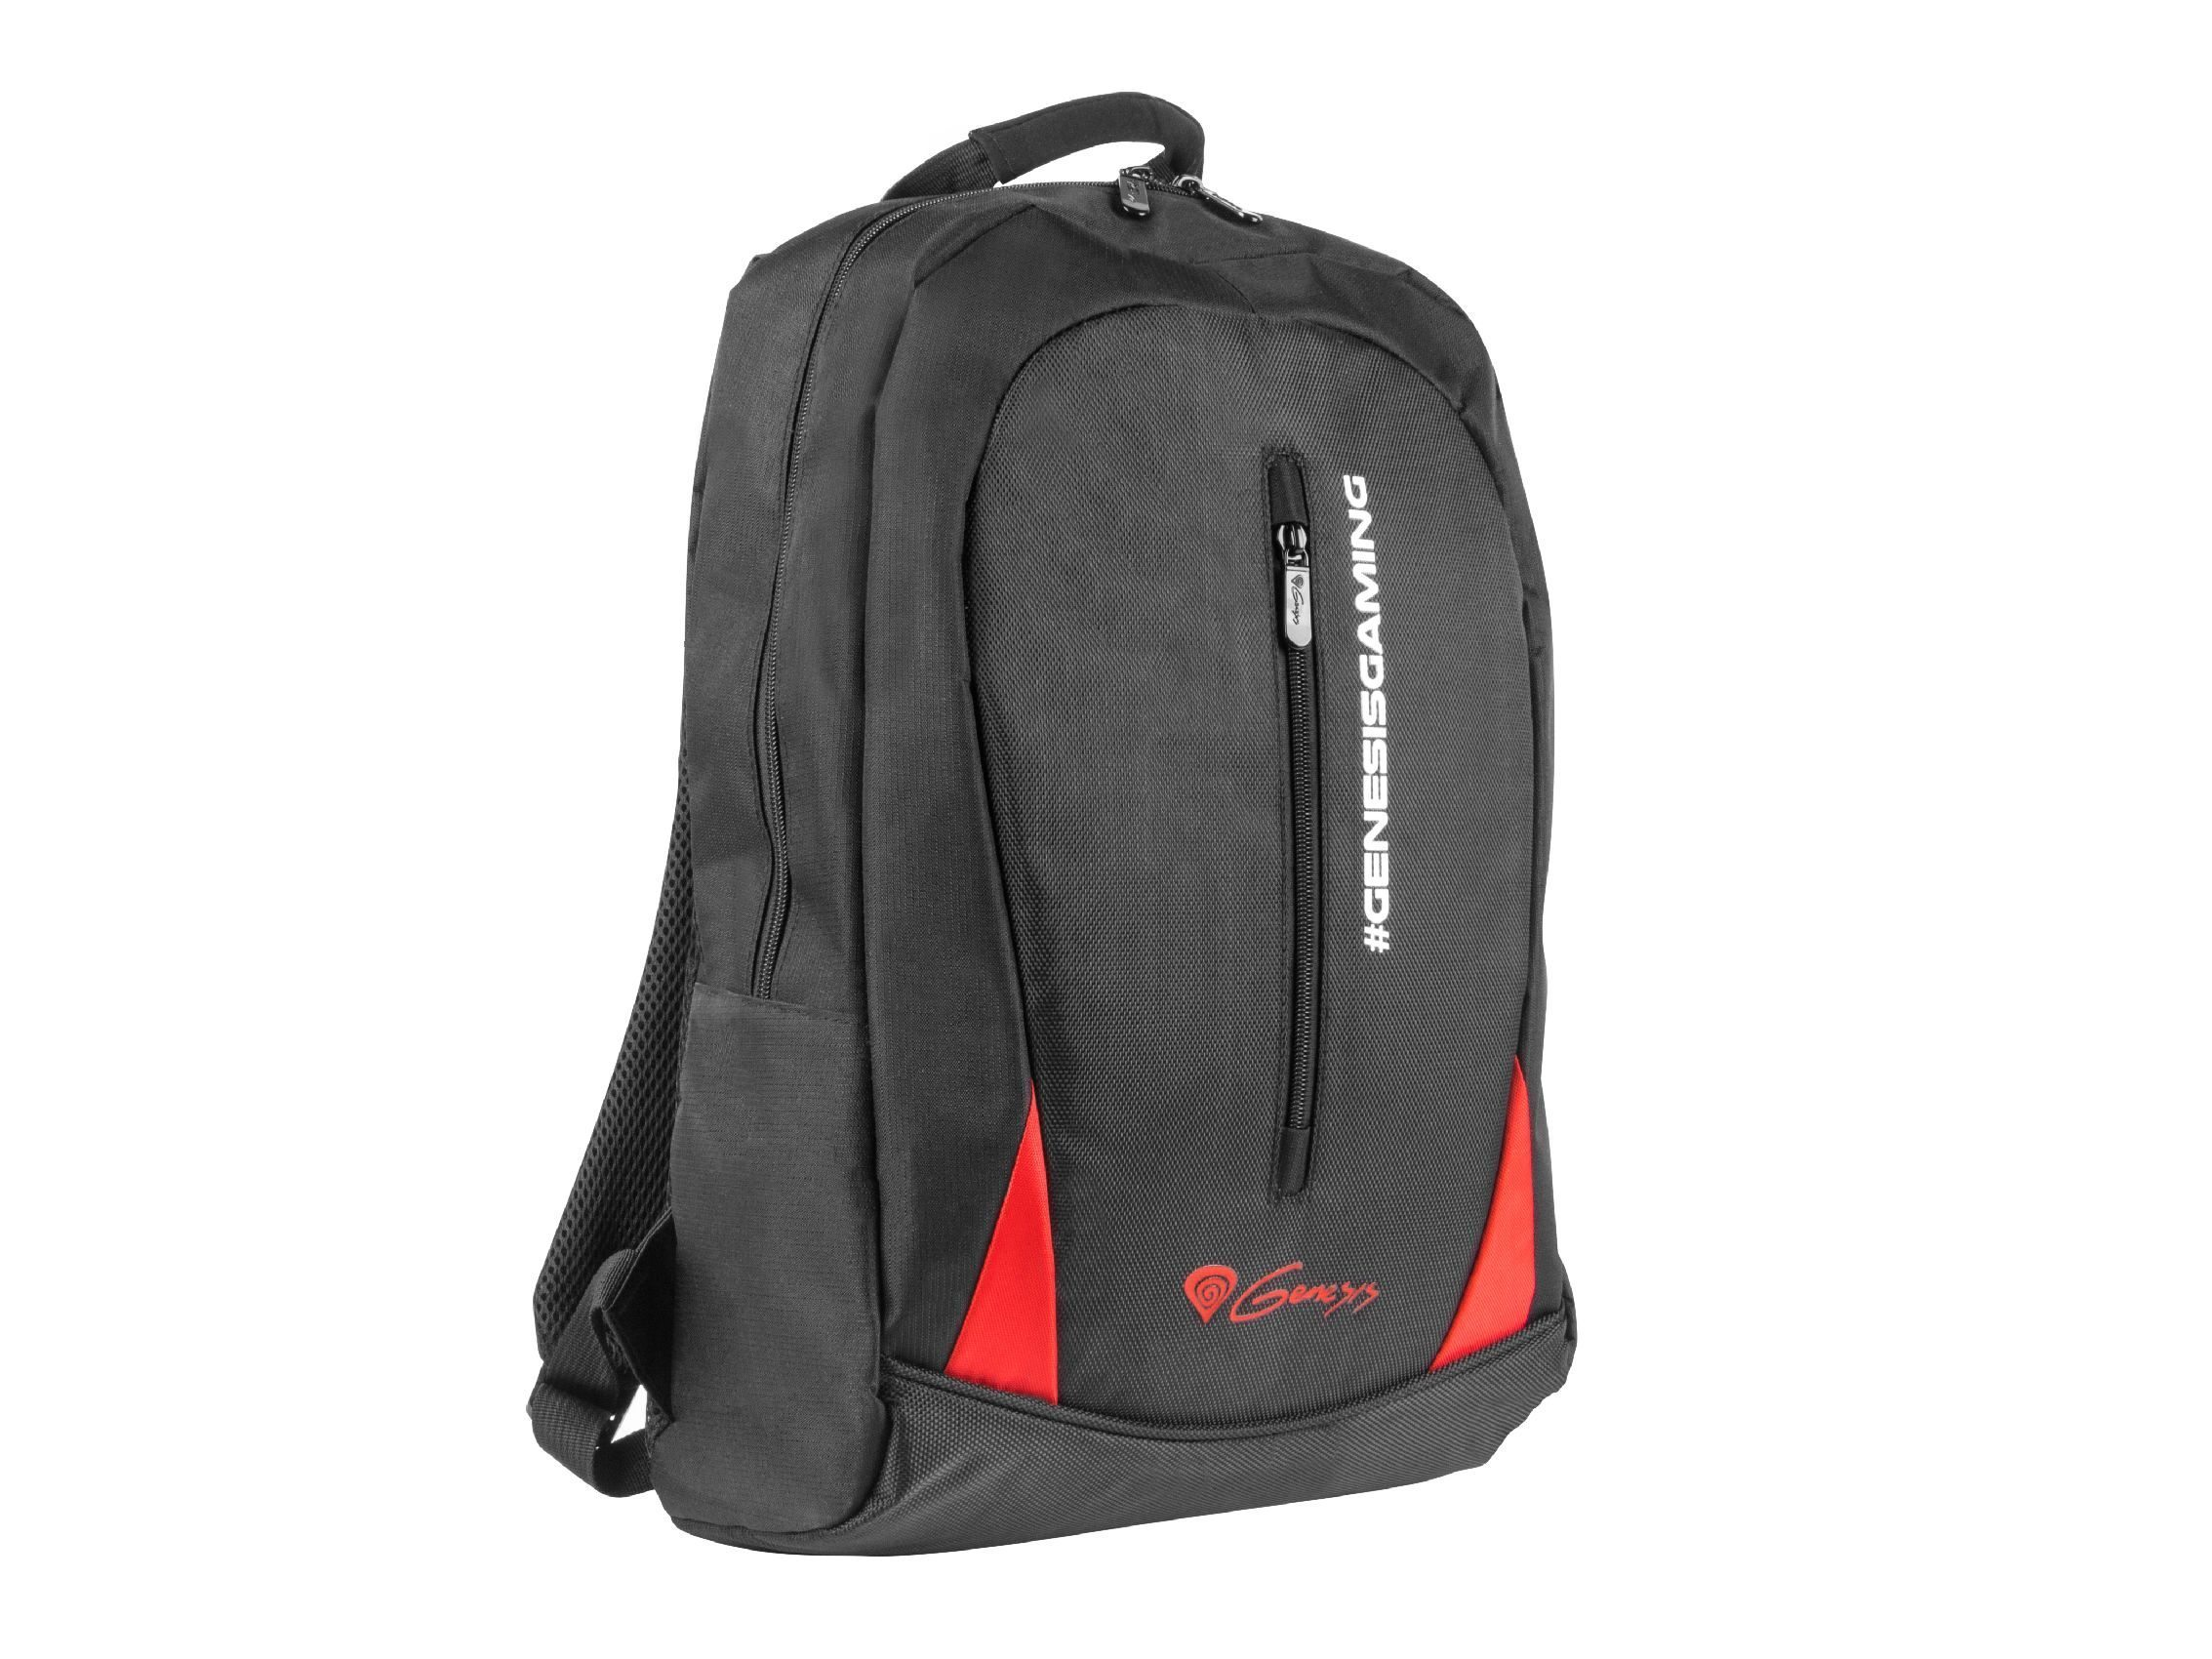 "Genesis Backpack Laptop 15.6"" - PALLAD 100 - NBG-1133"